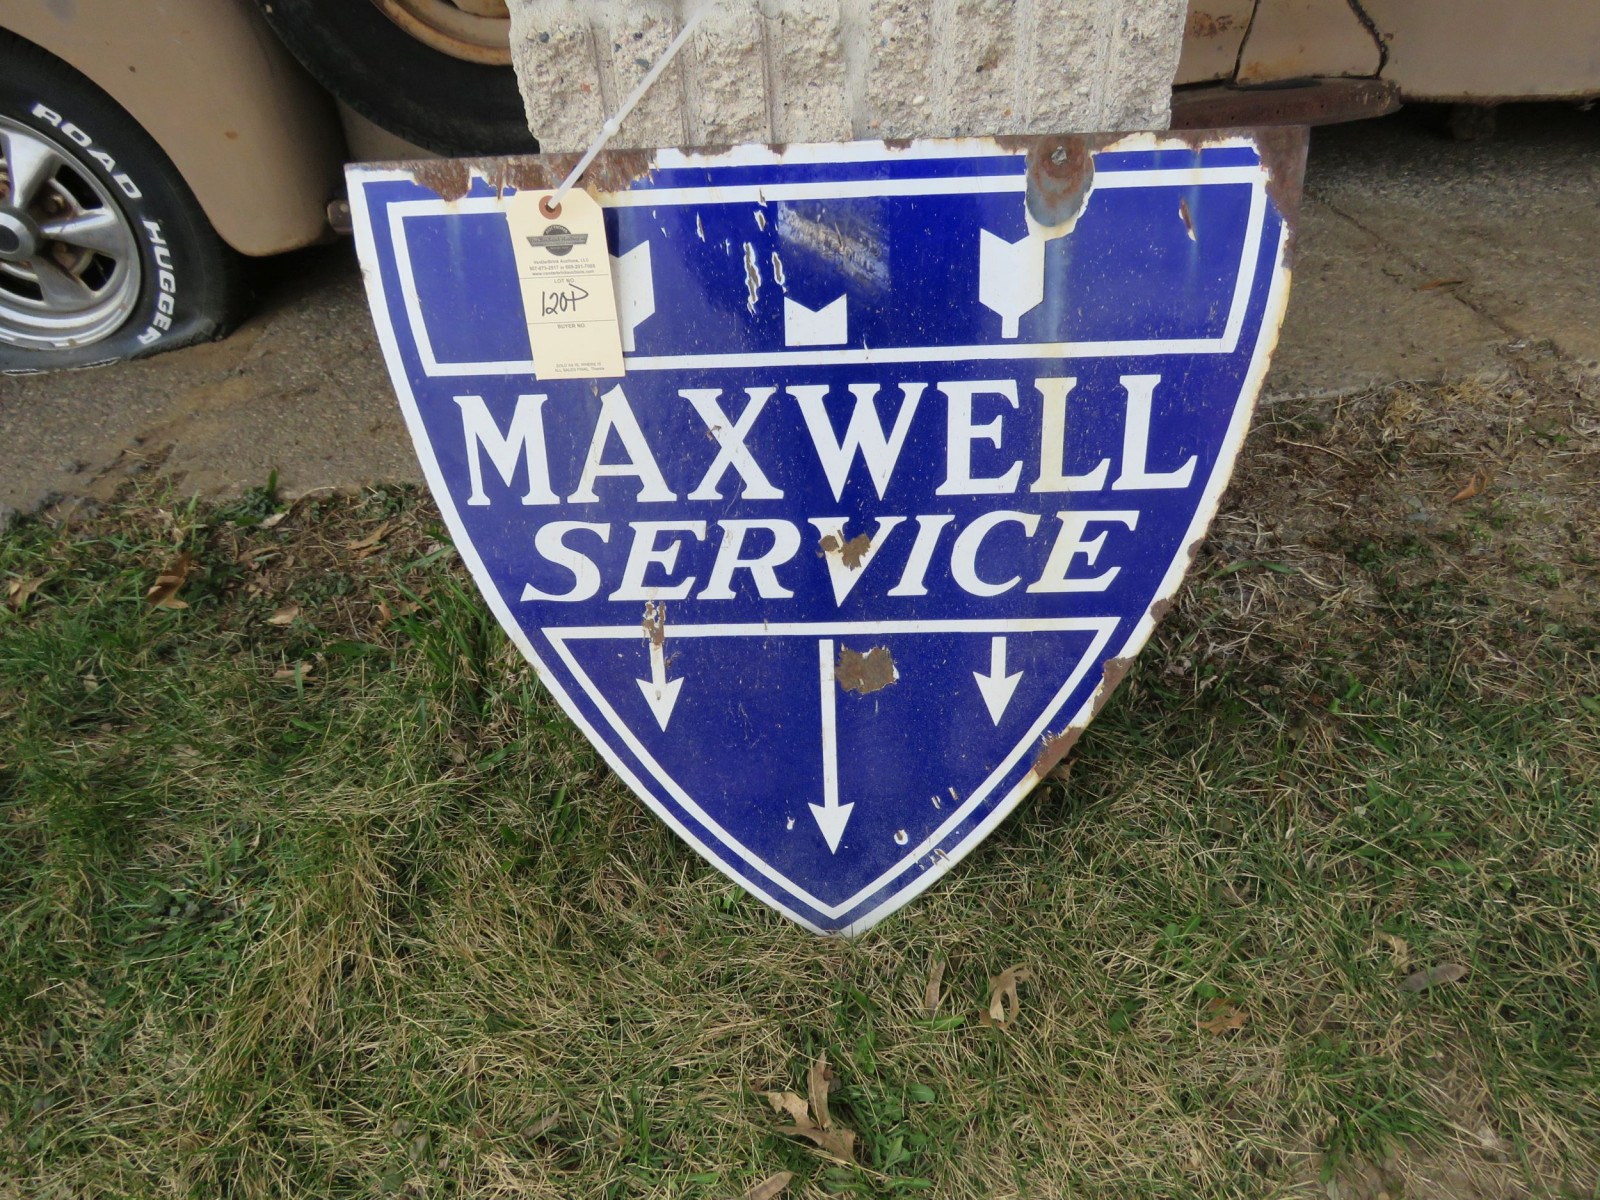 Maxwell Double sided Porcelain Sign 22x24 inches - Image 1